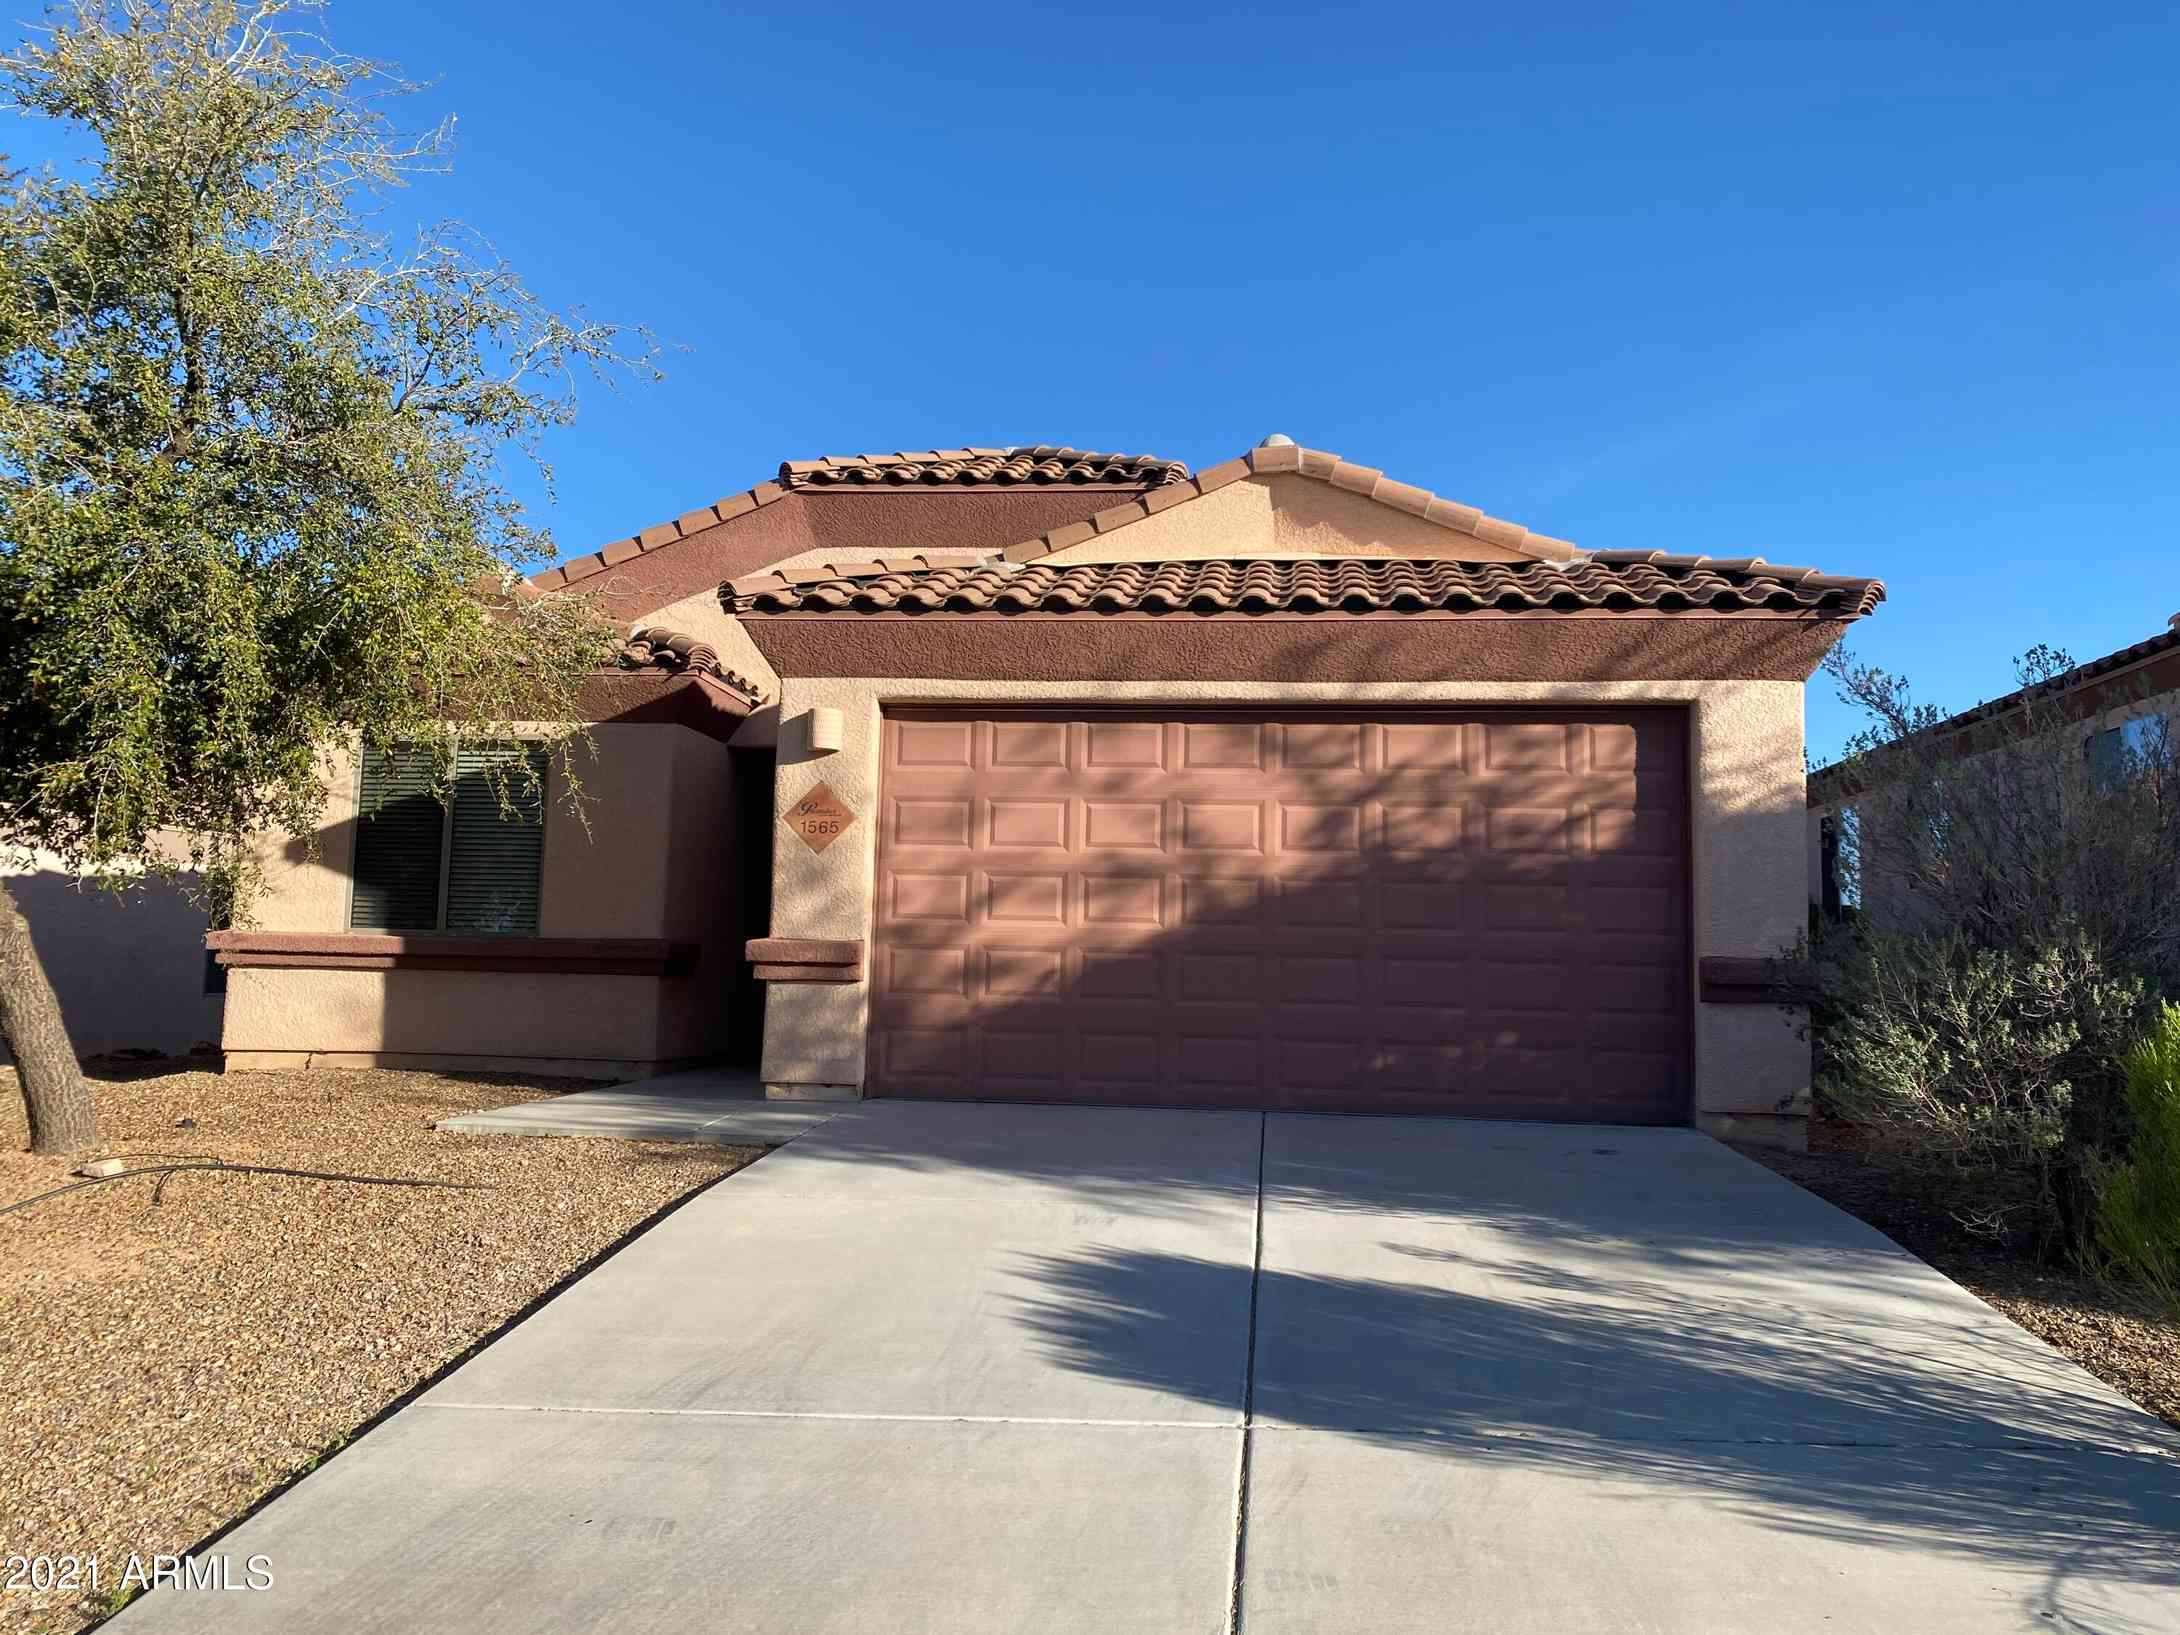 1565 COTTONWOOD BLUFFS Drive, Benson, AZ, 85602,